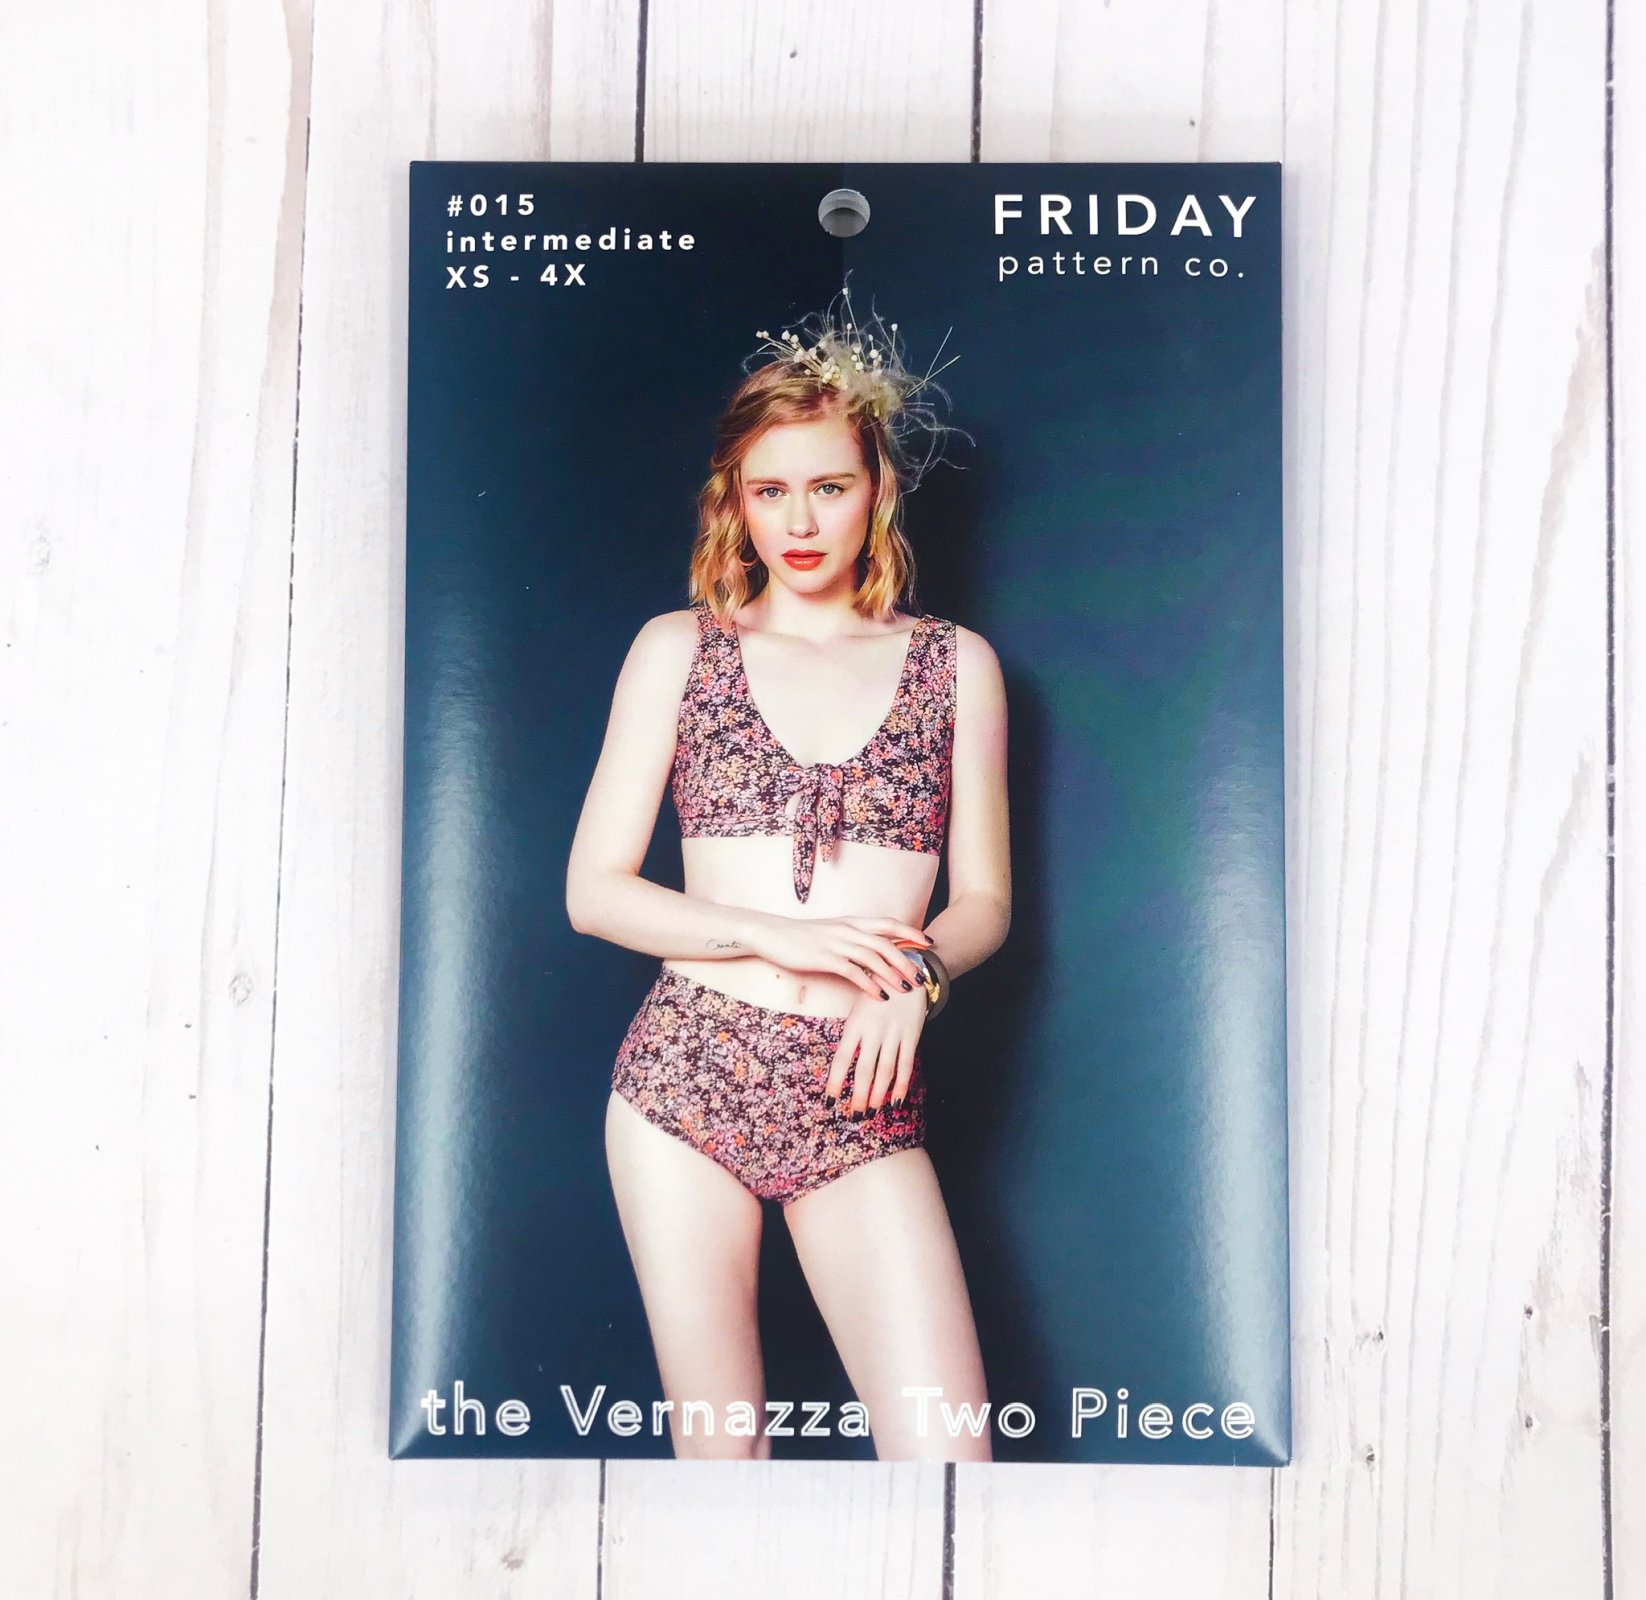 Friday Pattern Co. - The Vernazza Two Piece